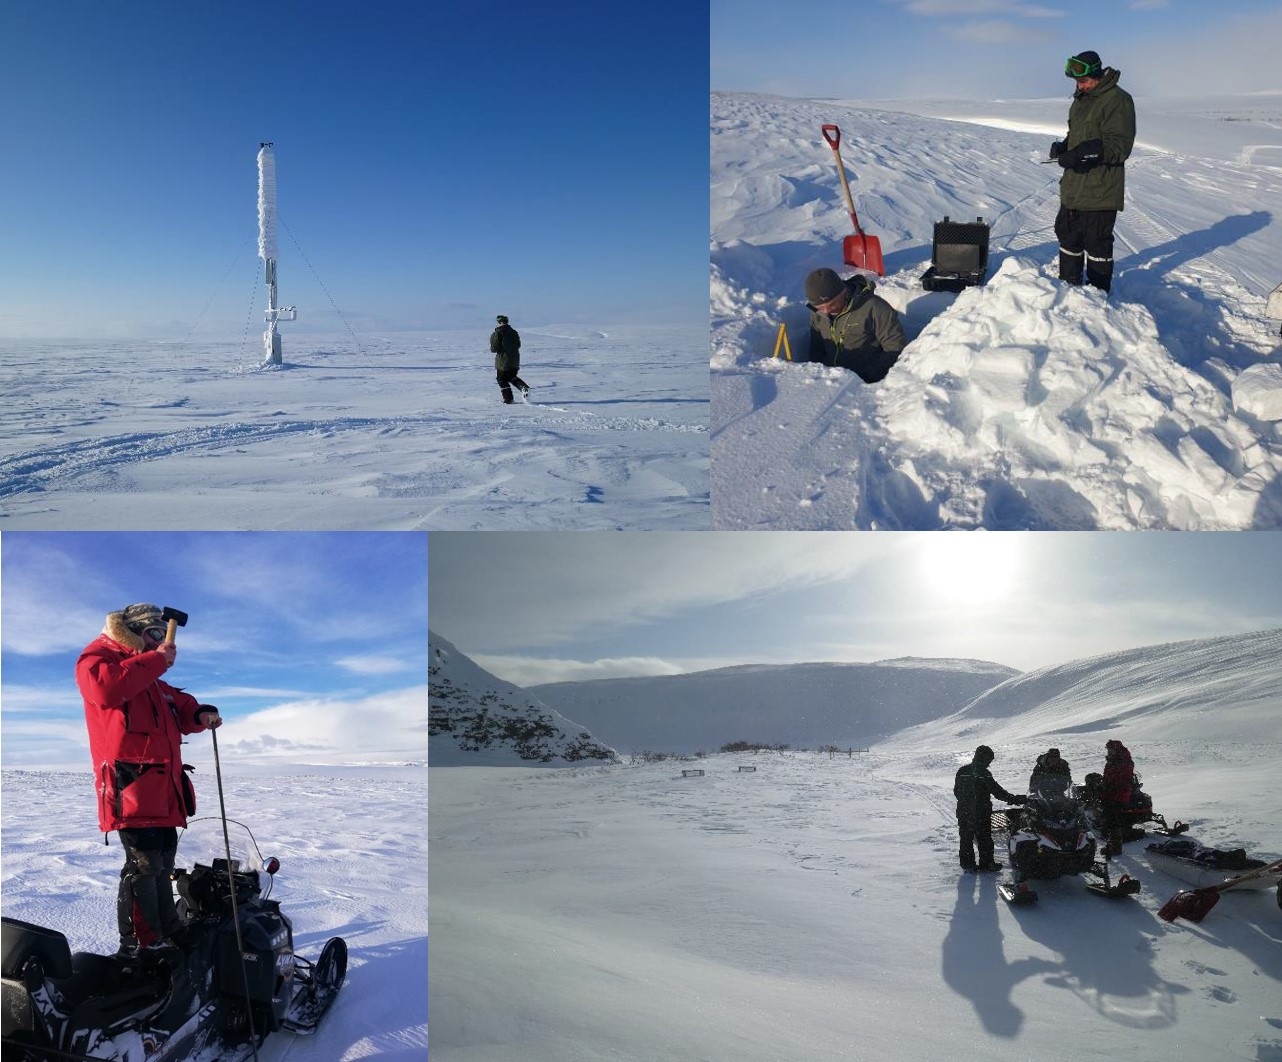 Upper left: COAT weather station at Boazoaivi (Reinhaugen), Upper right: Measurements of snow profile structure, Lower right: Hammering down a snow depth probe, Lower left: Little snow at Vestre Jakobselv study area (1m high small exclosures are visible). All photos: COAT.